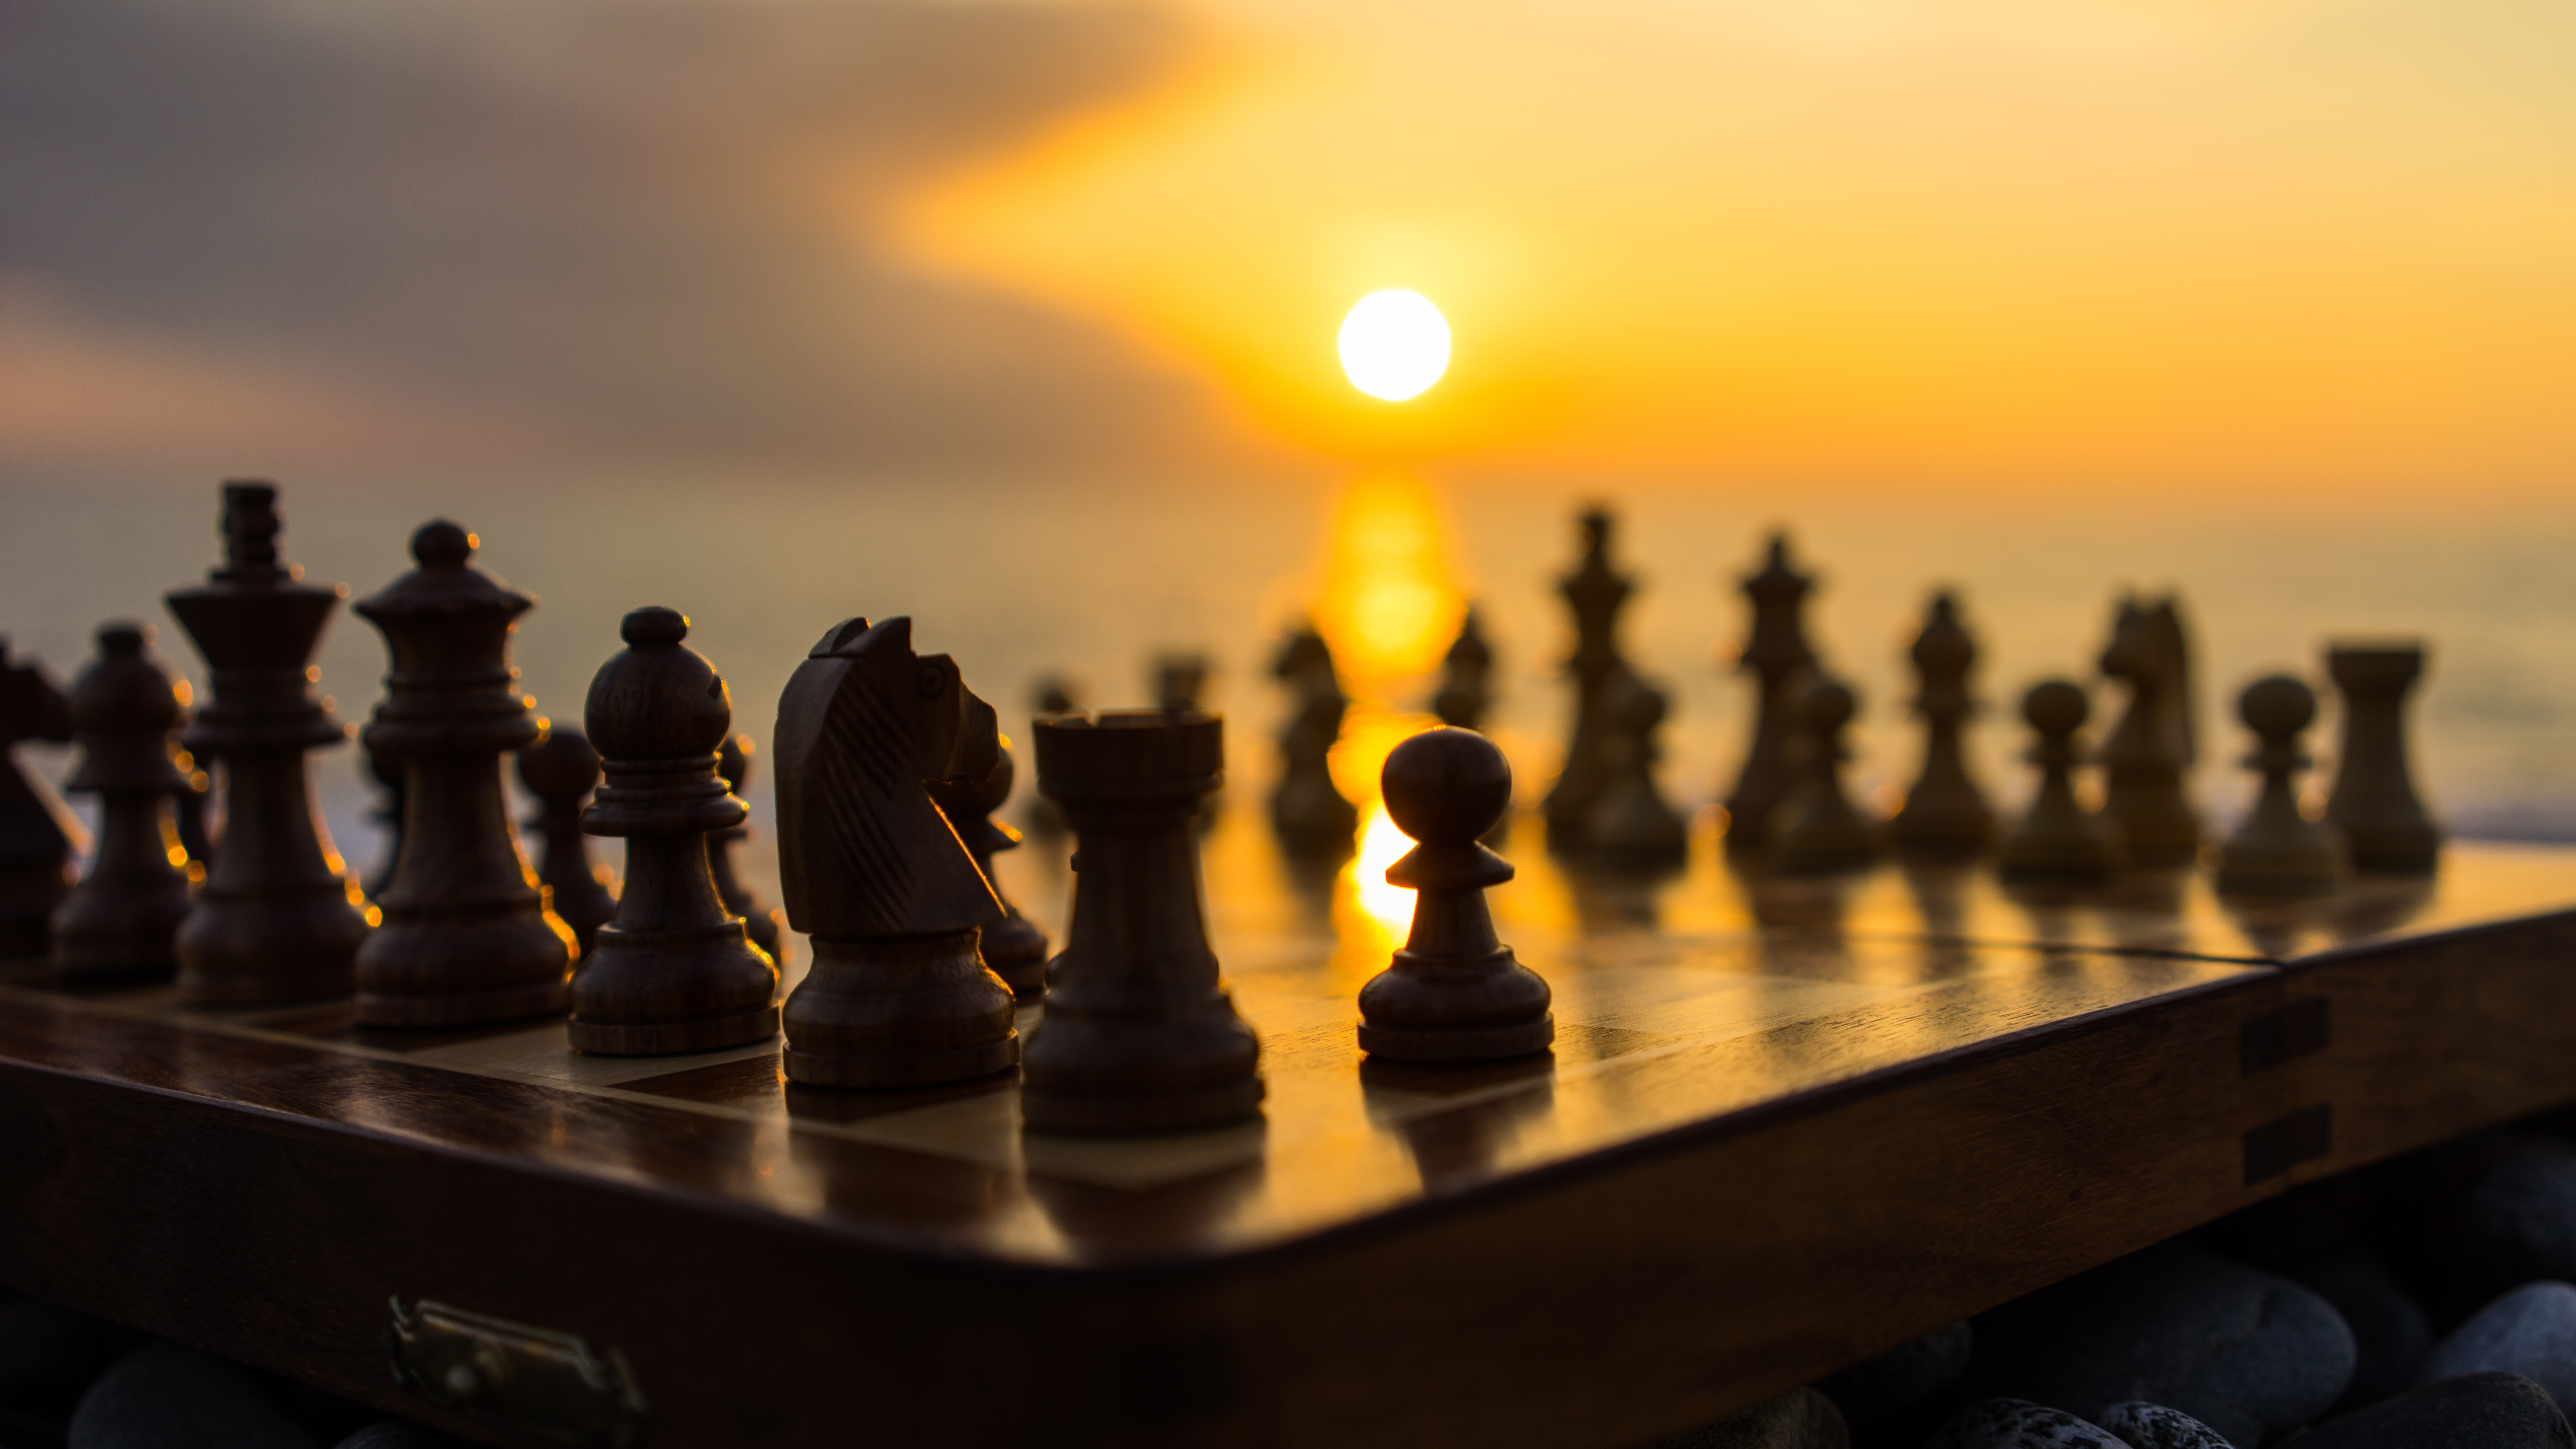 Chess 8k HD Sports 4k Wallpapers Images Backgrounds Photos And